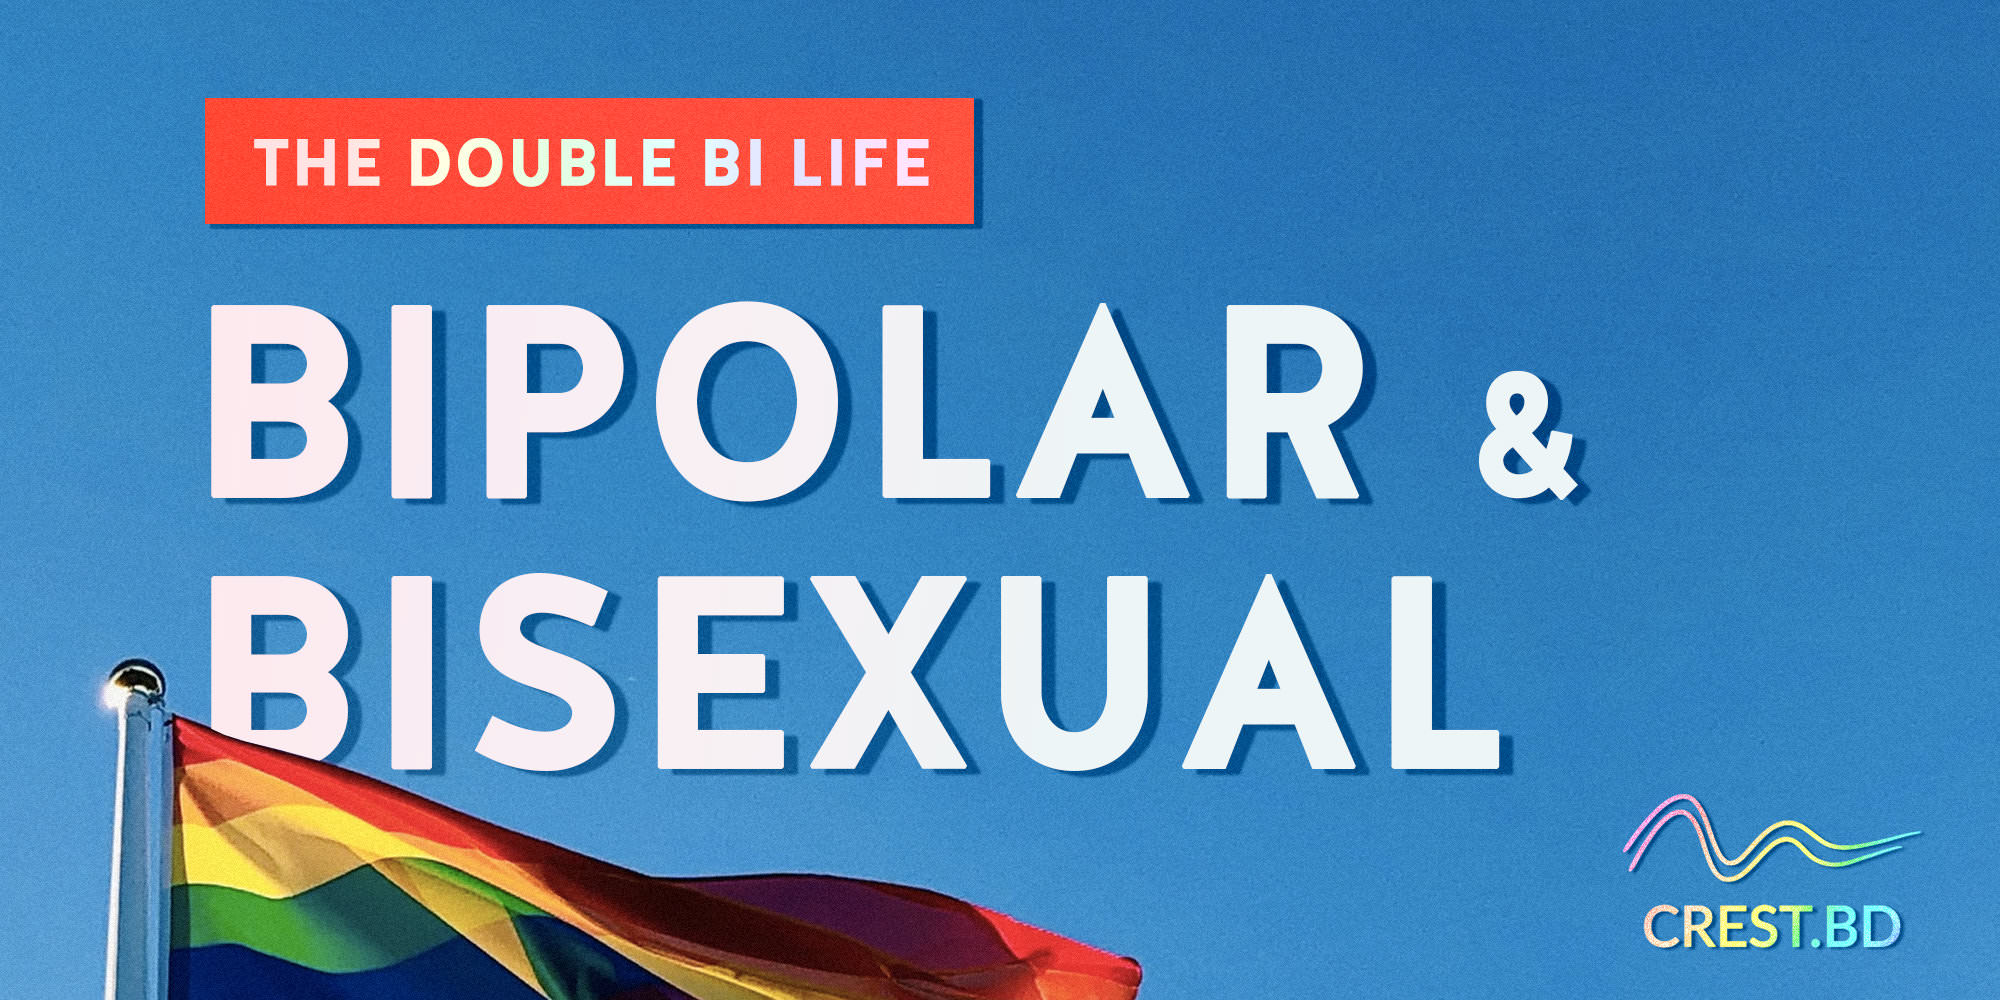 The Double Bi Life: Intersections Between Being Bipolar & Bisexual